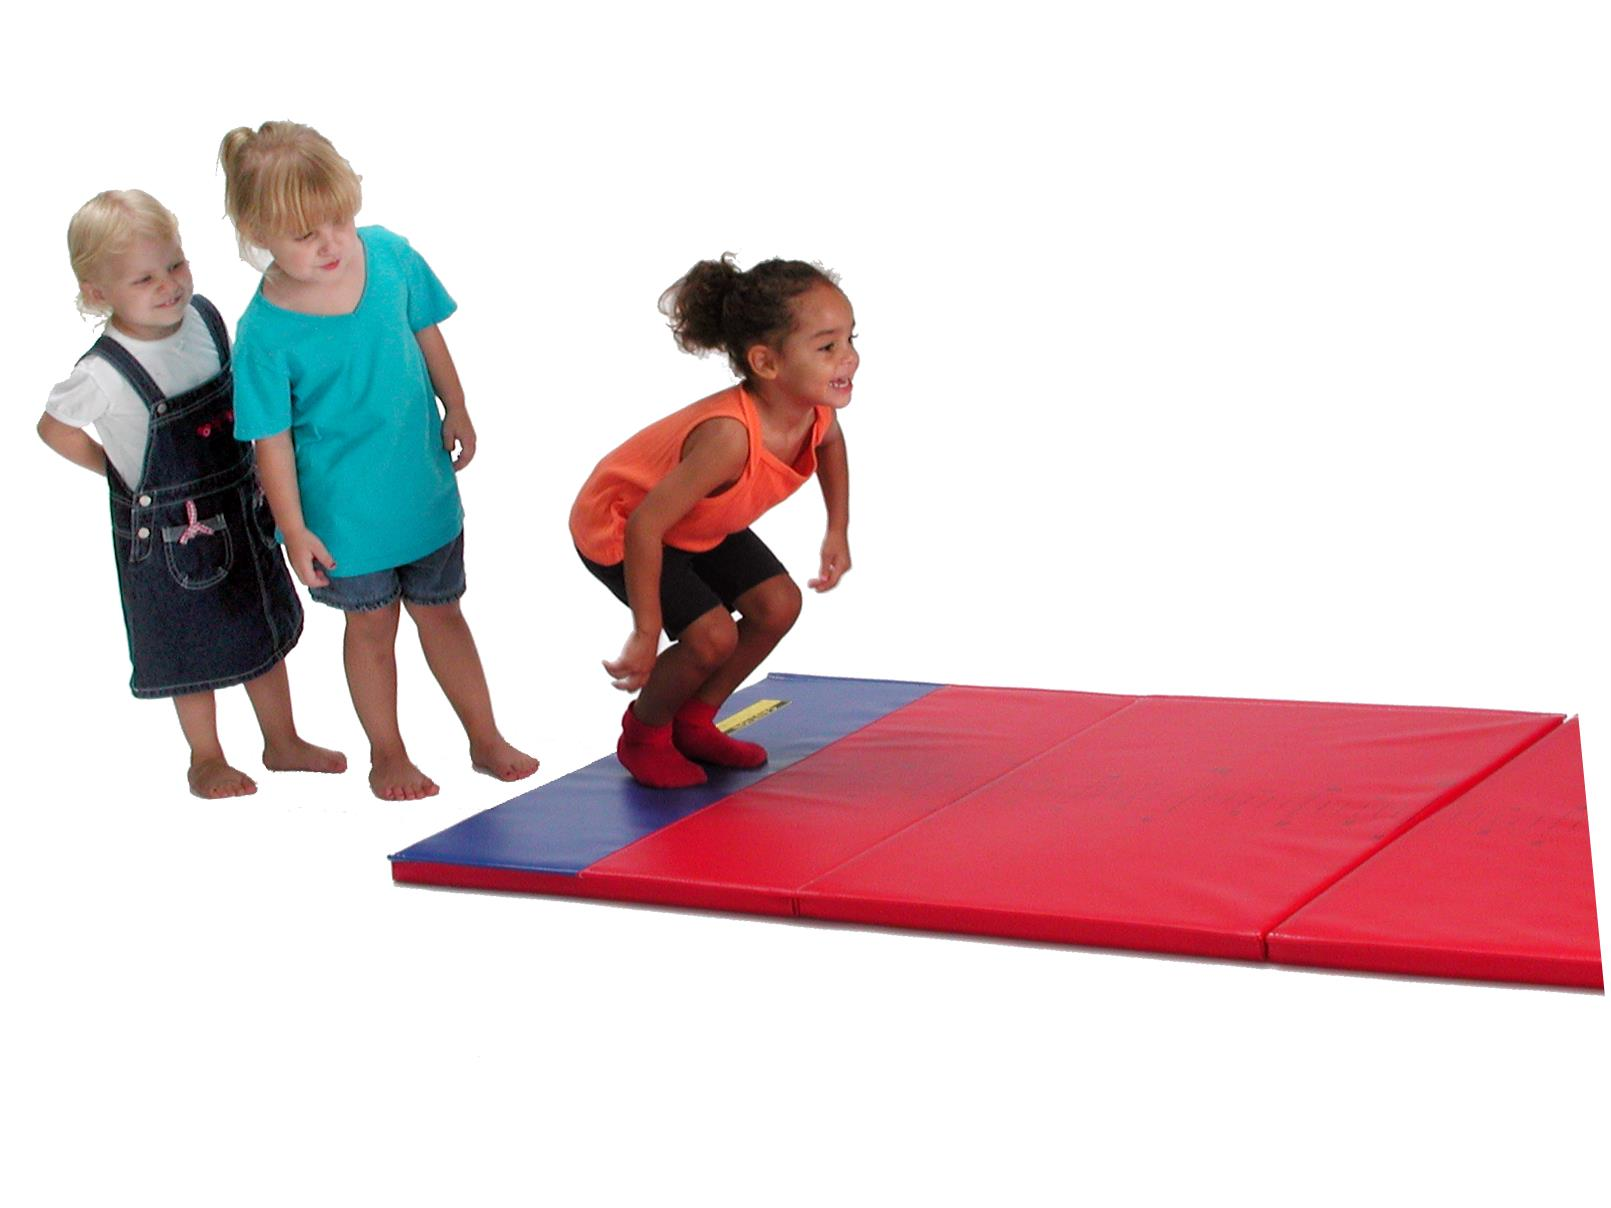 Activity Floor Mats - Early Childhood - Active learning